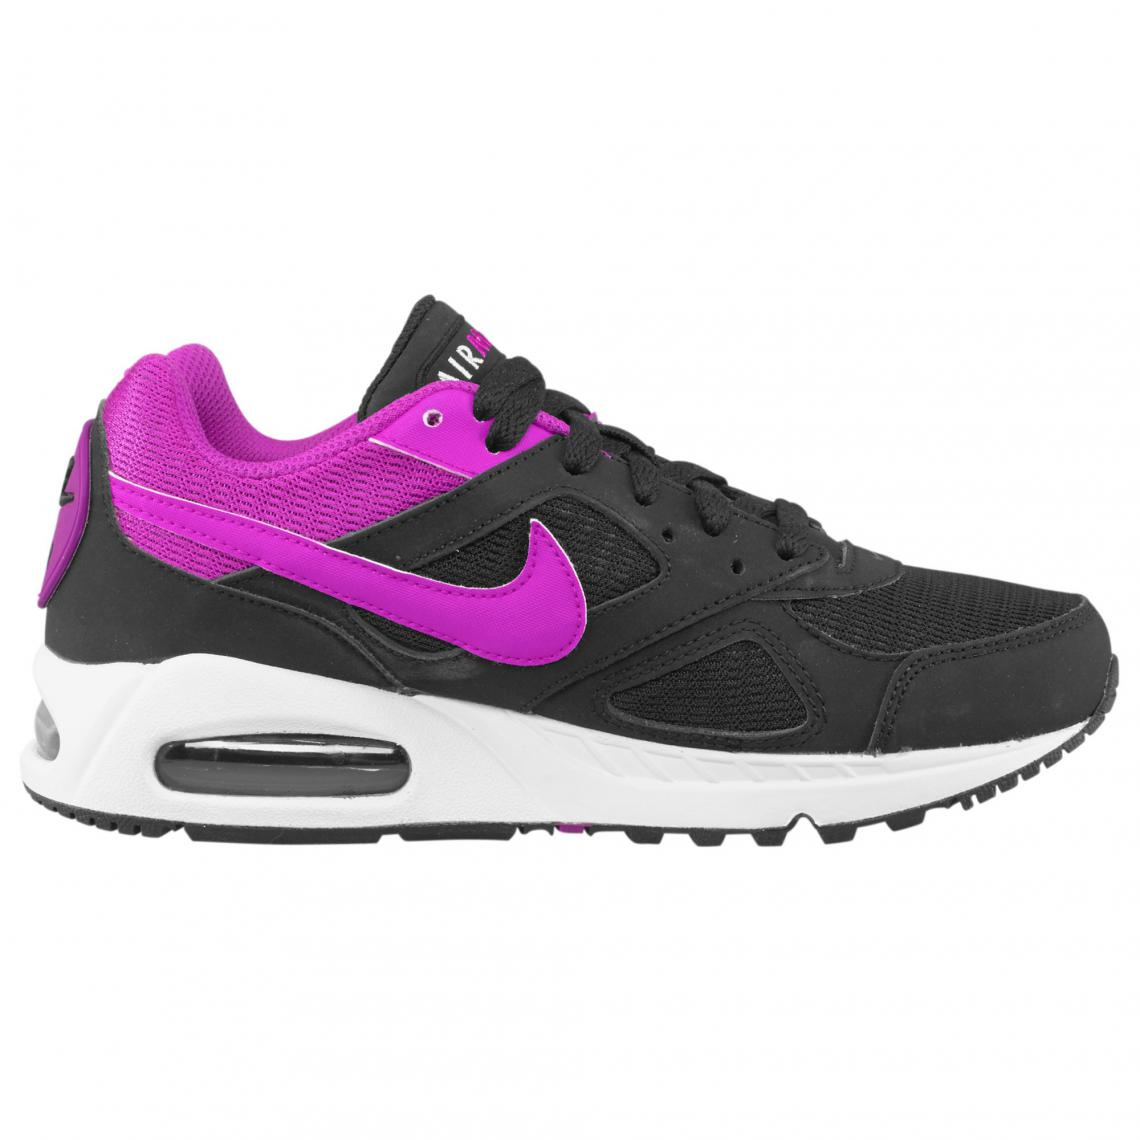 code promo 5ec1c 488a0 Chaussures Nike Air Max - Noir/Rose | 3 SUISSES